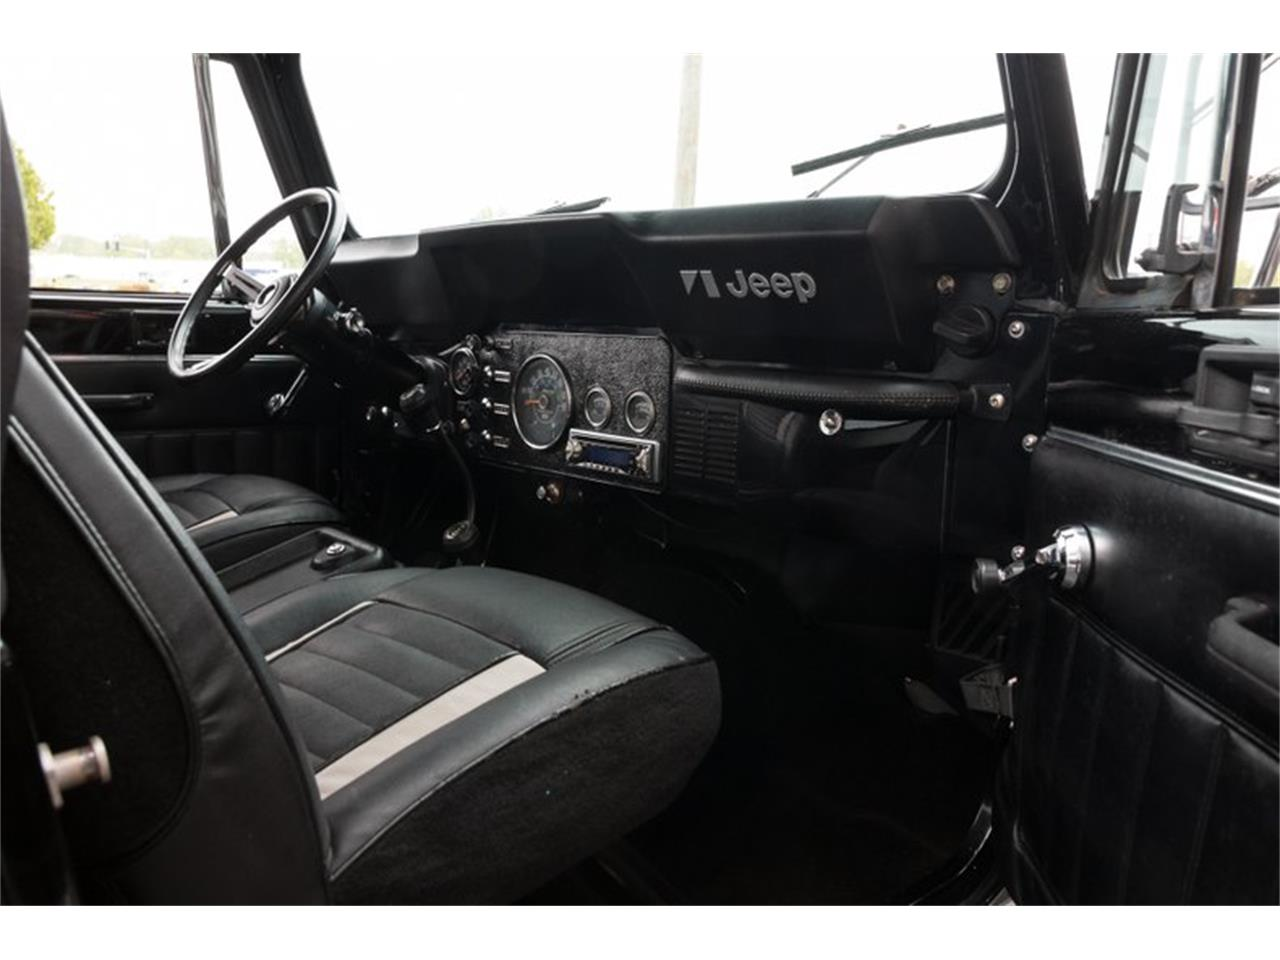 Large Picture of '82 Jeep CJ8 Scrambler located in St. Charles Missouri Offered by Fast Lane Classic Cars Inc. - Q11Z